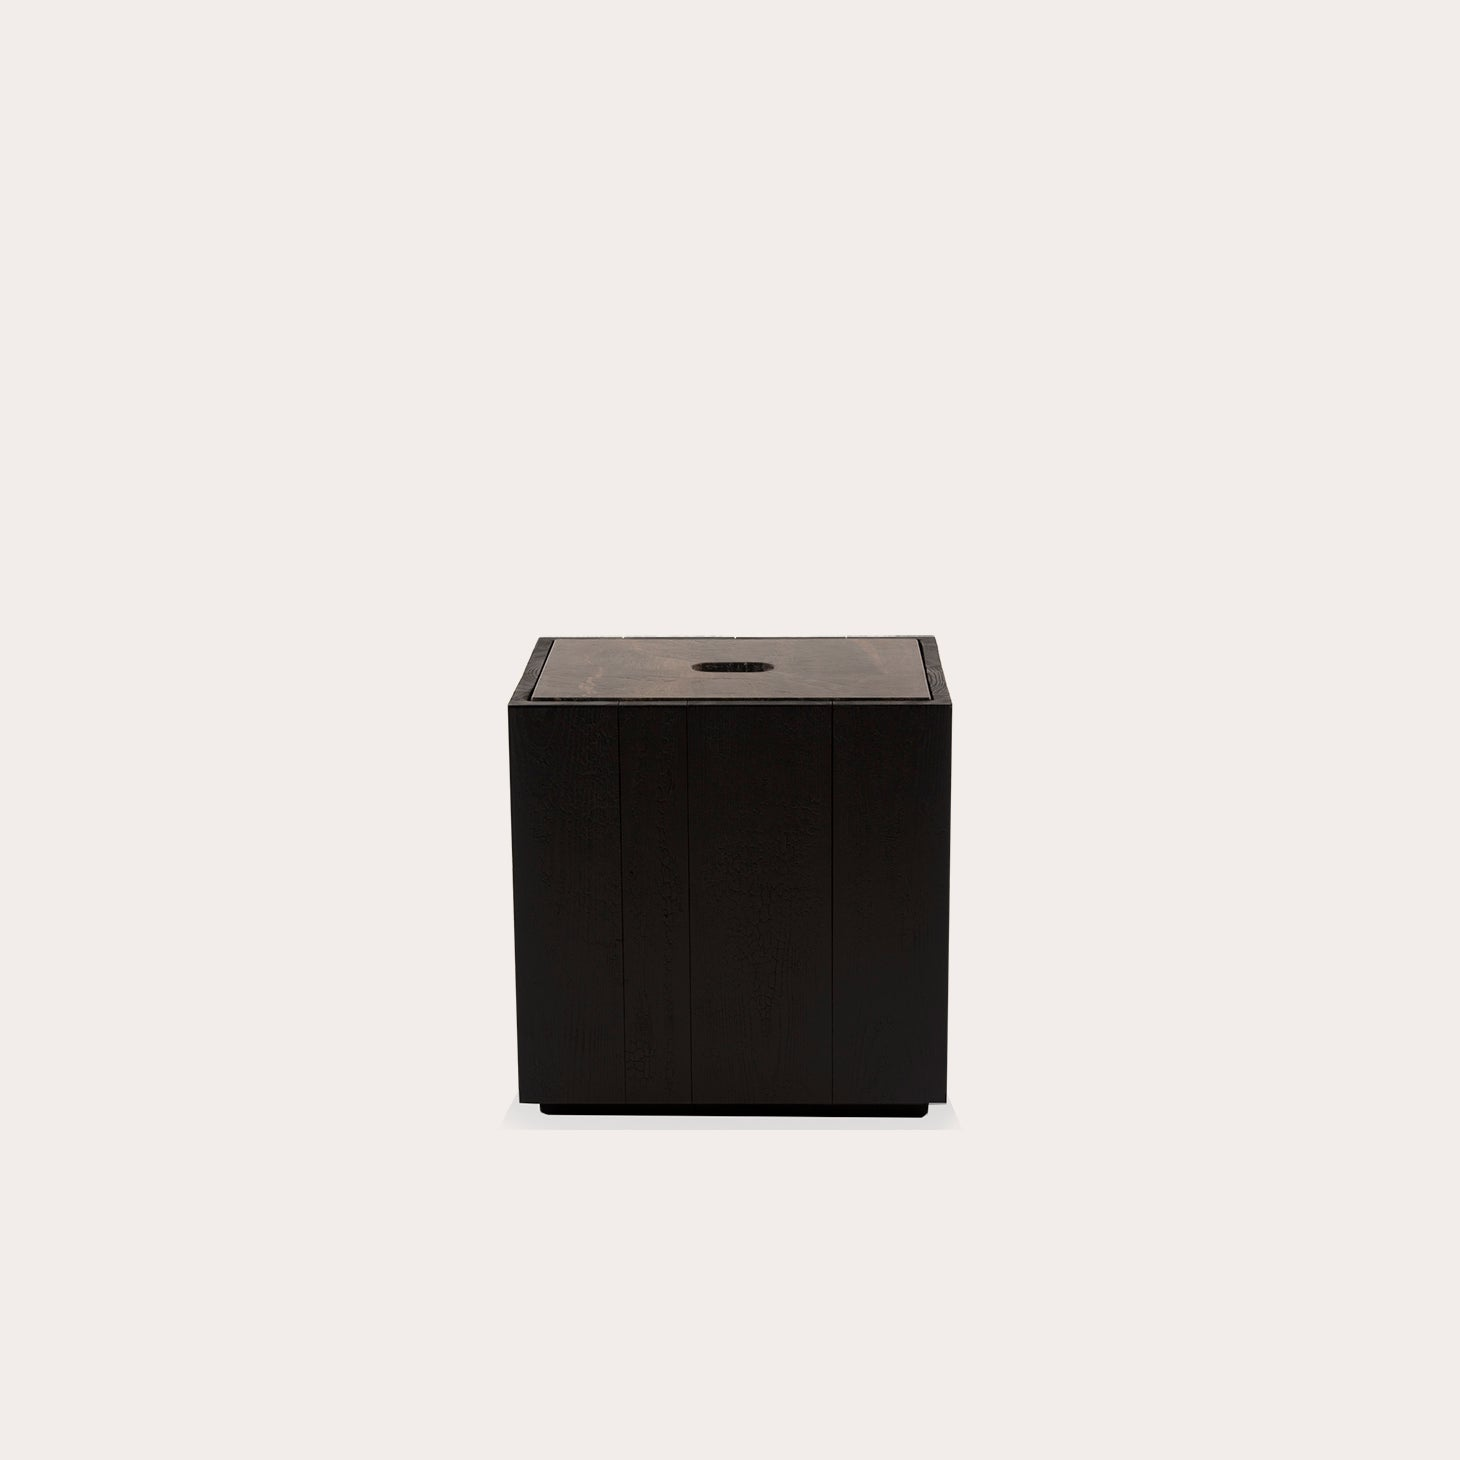 Apple Box Tables Ashley Botten Designer Furniture Sku: 198-230-10000